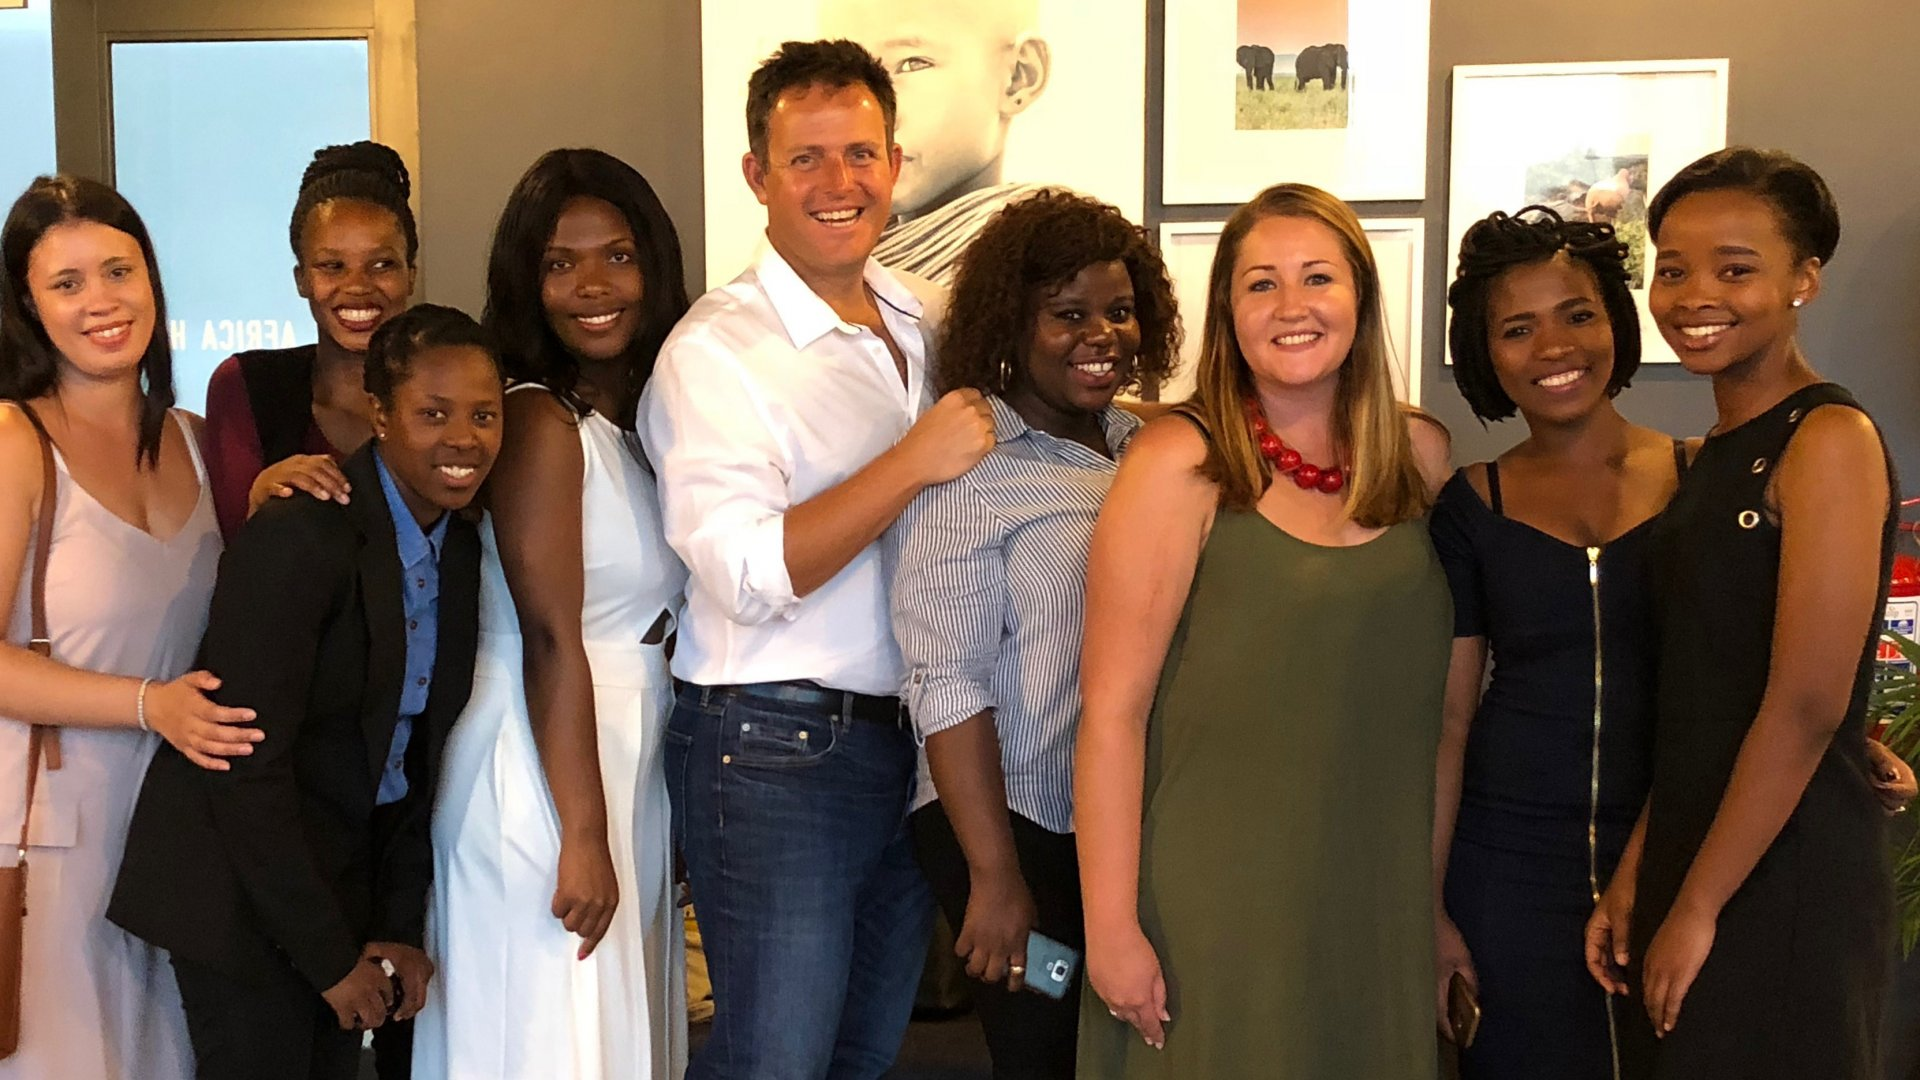 Pieter Geldenhuys (center), founder of Tourism Boot Camp, has trained 20 local interns since 2017, helping to close the gap between South Africa's high unemployment and the lack of talented tourism operators.